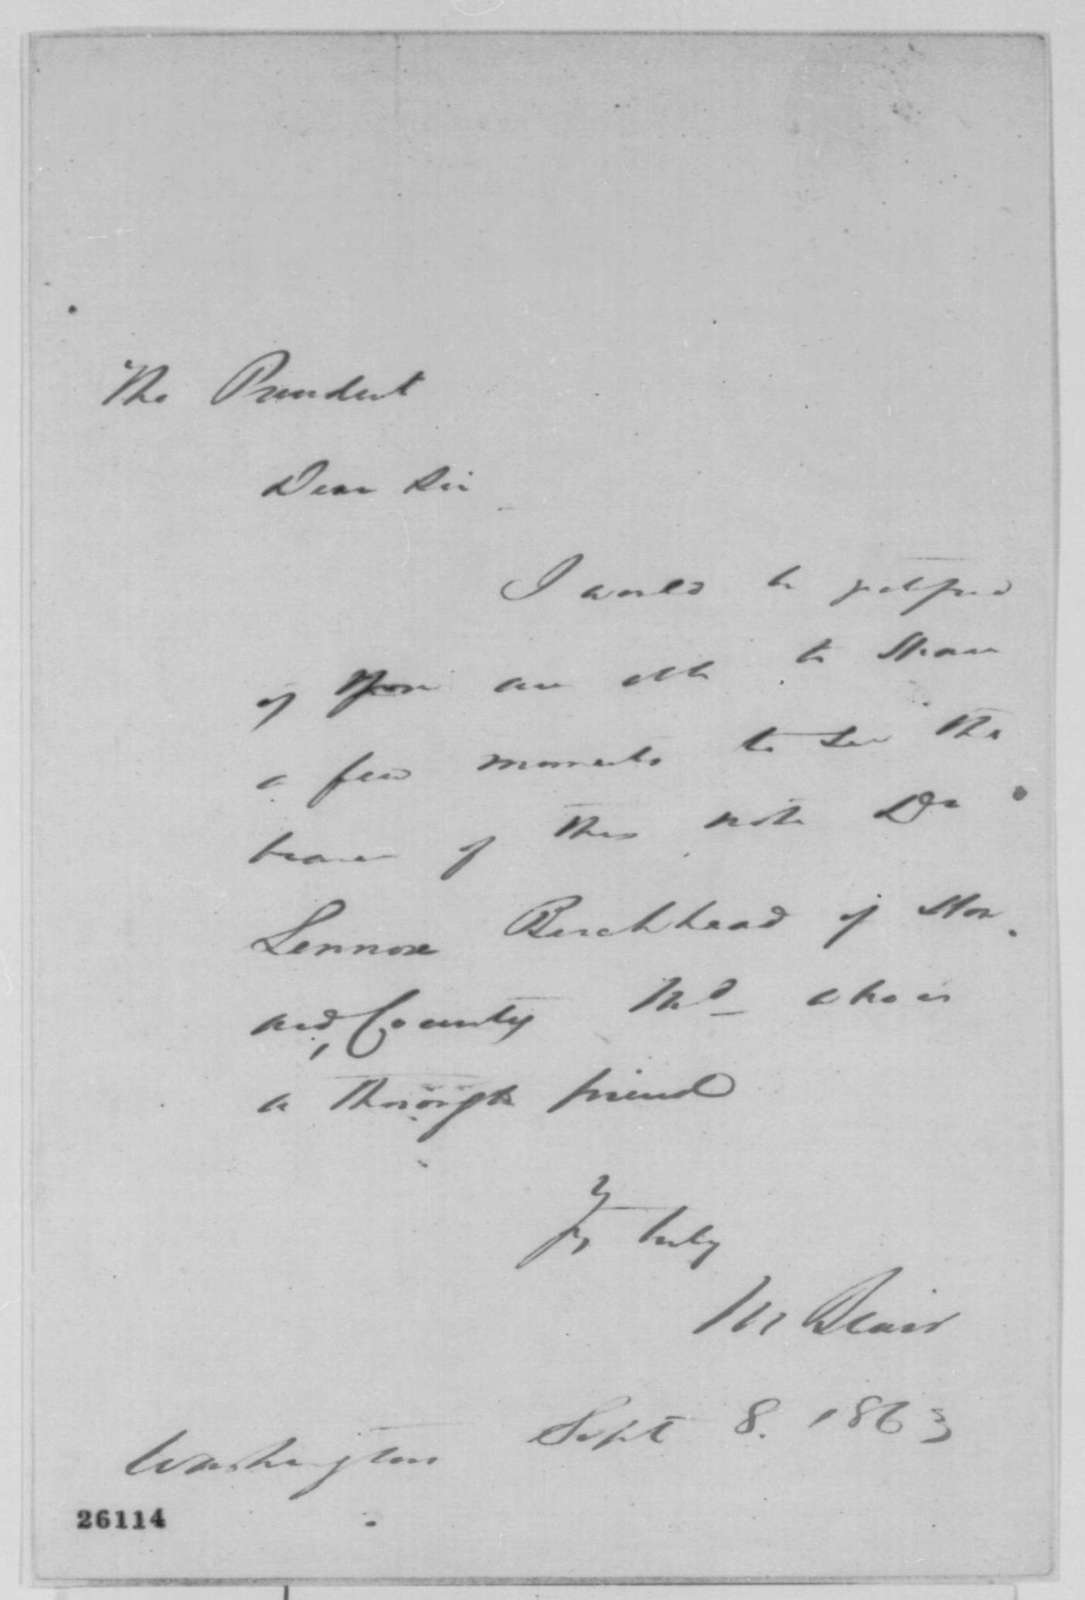 Montgomery Blair and Lennox Birckhead to Abraham Lincoln, Tuesday, September 08, 1863  (Release of prisoner at Fort McHenry)